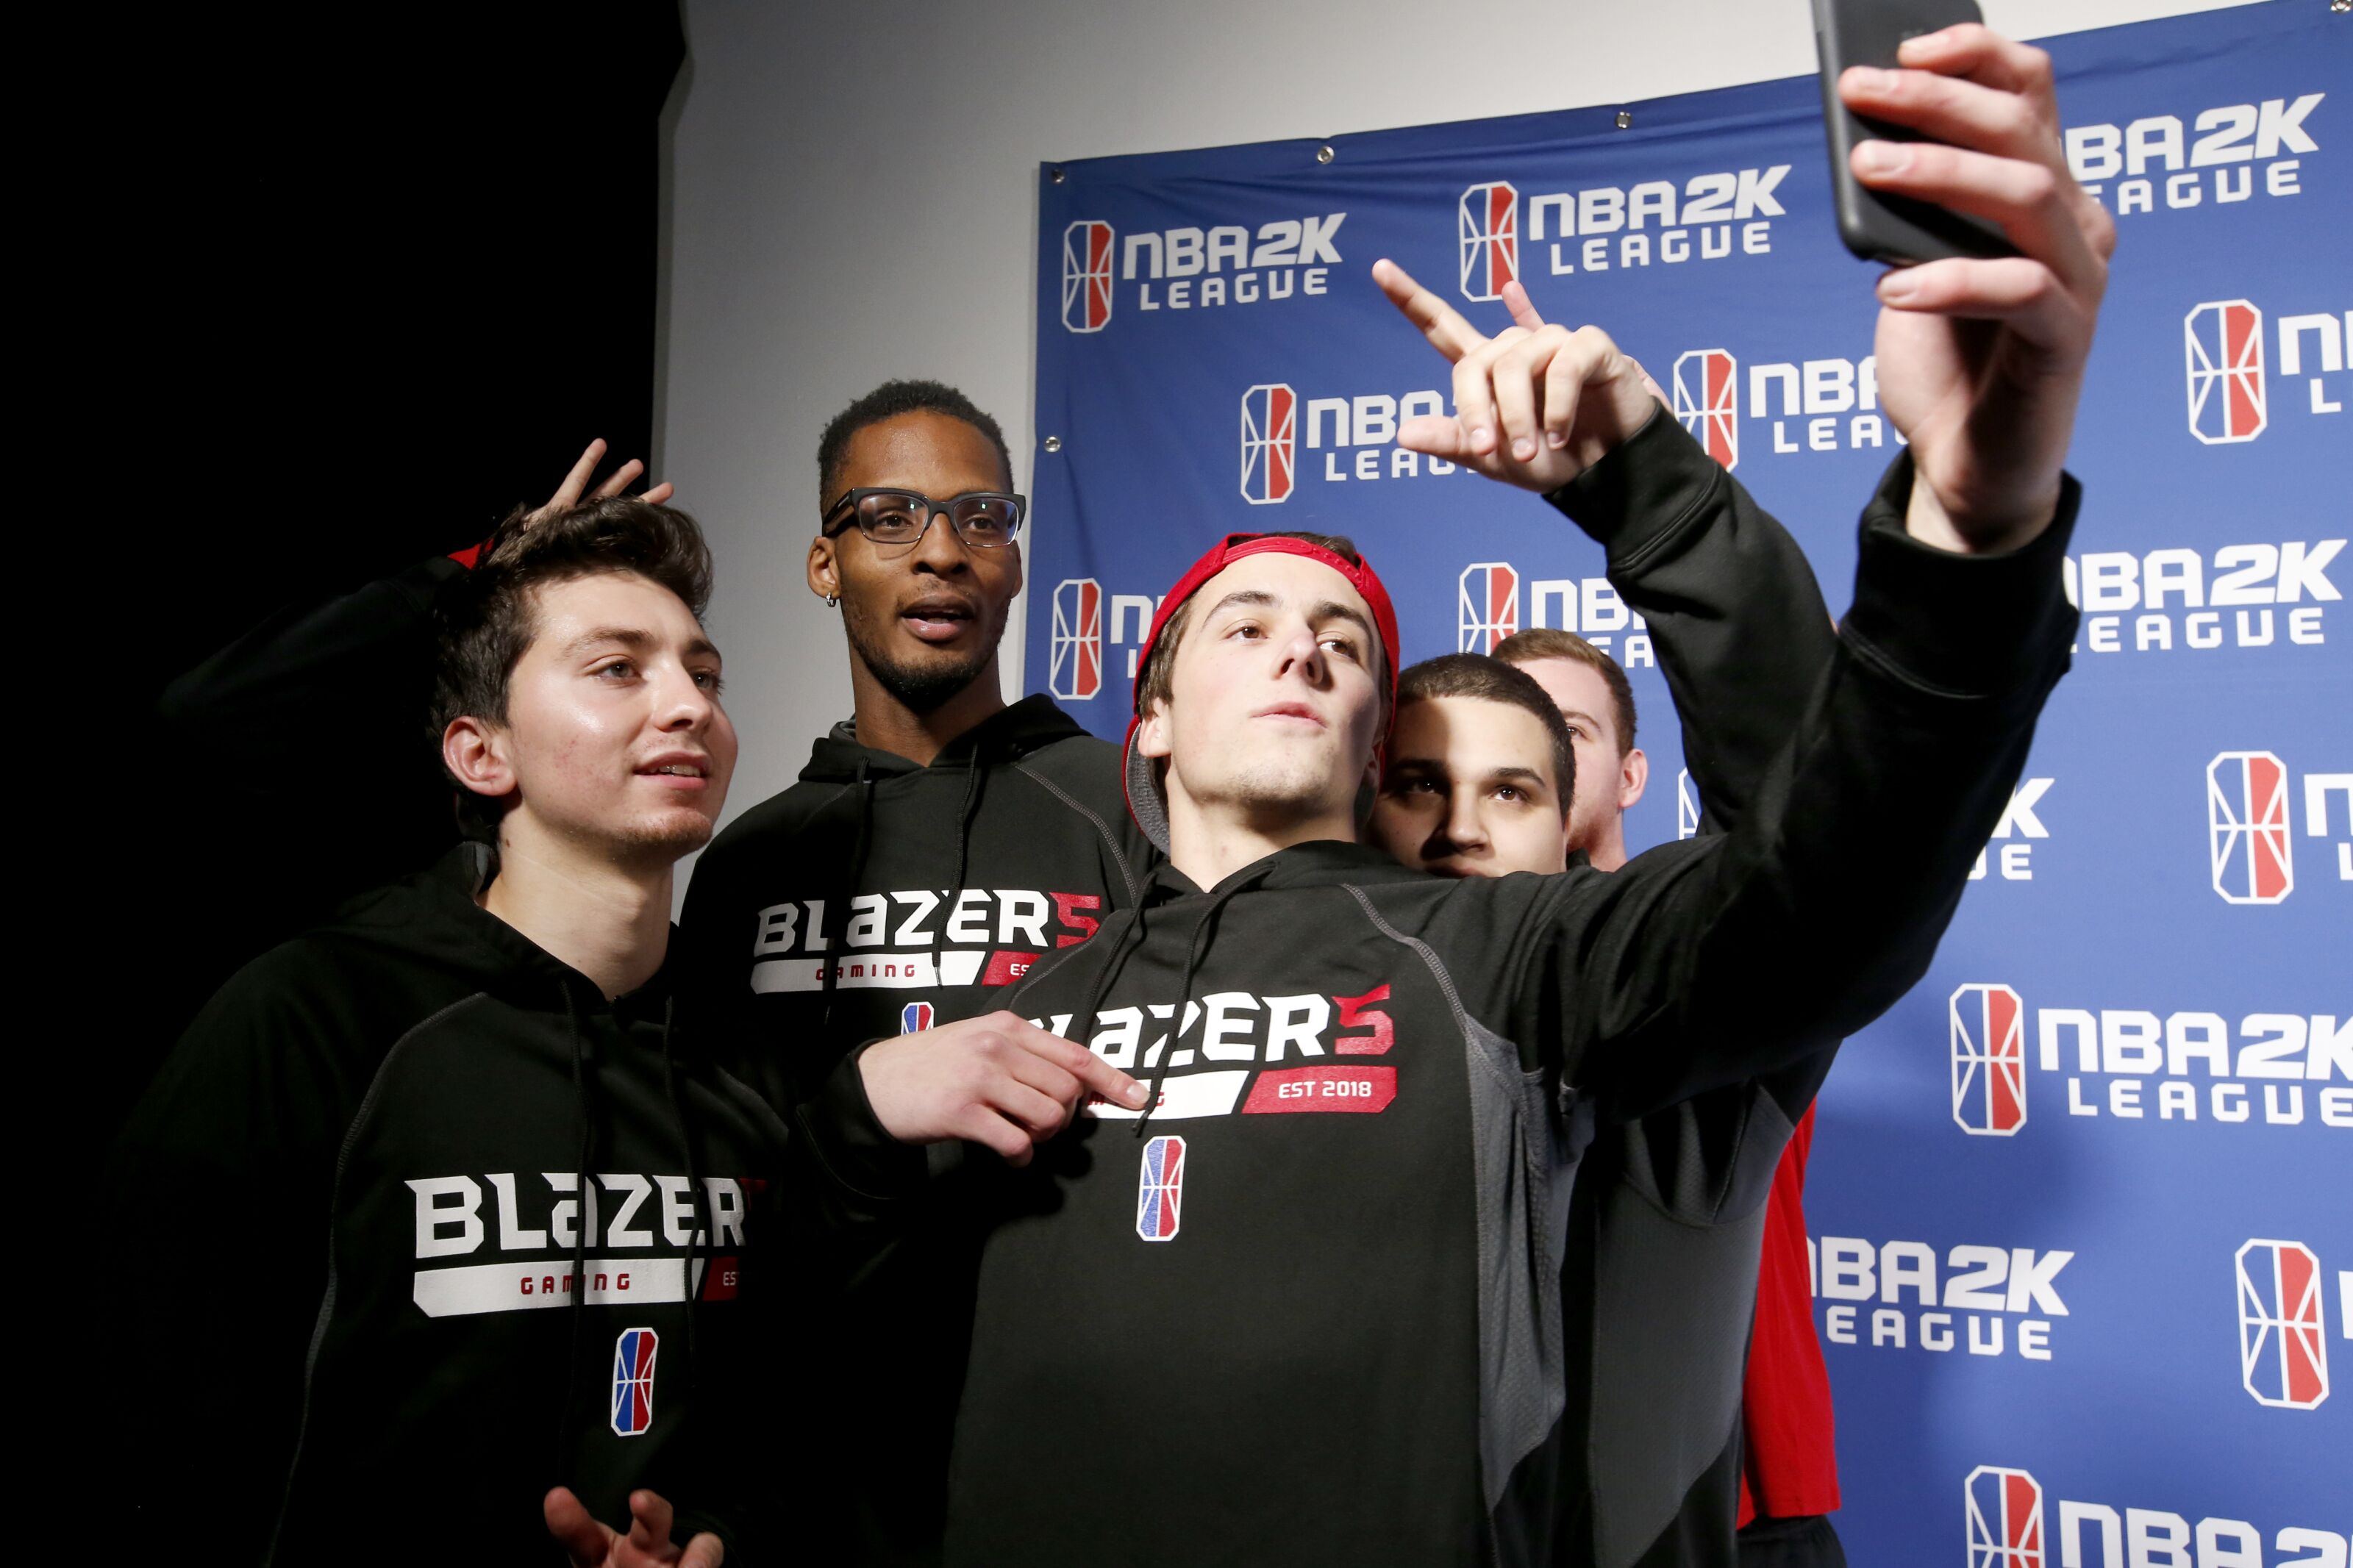 Blazer5 Gaming Representing Blazers In New NBA 2k League